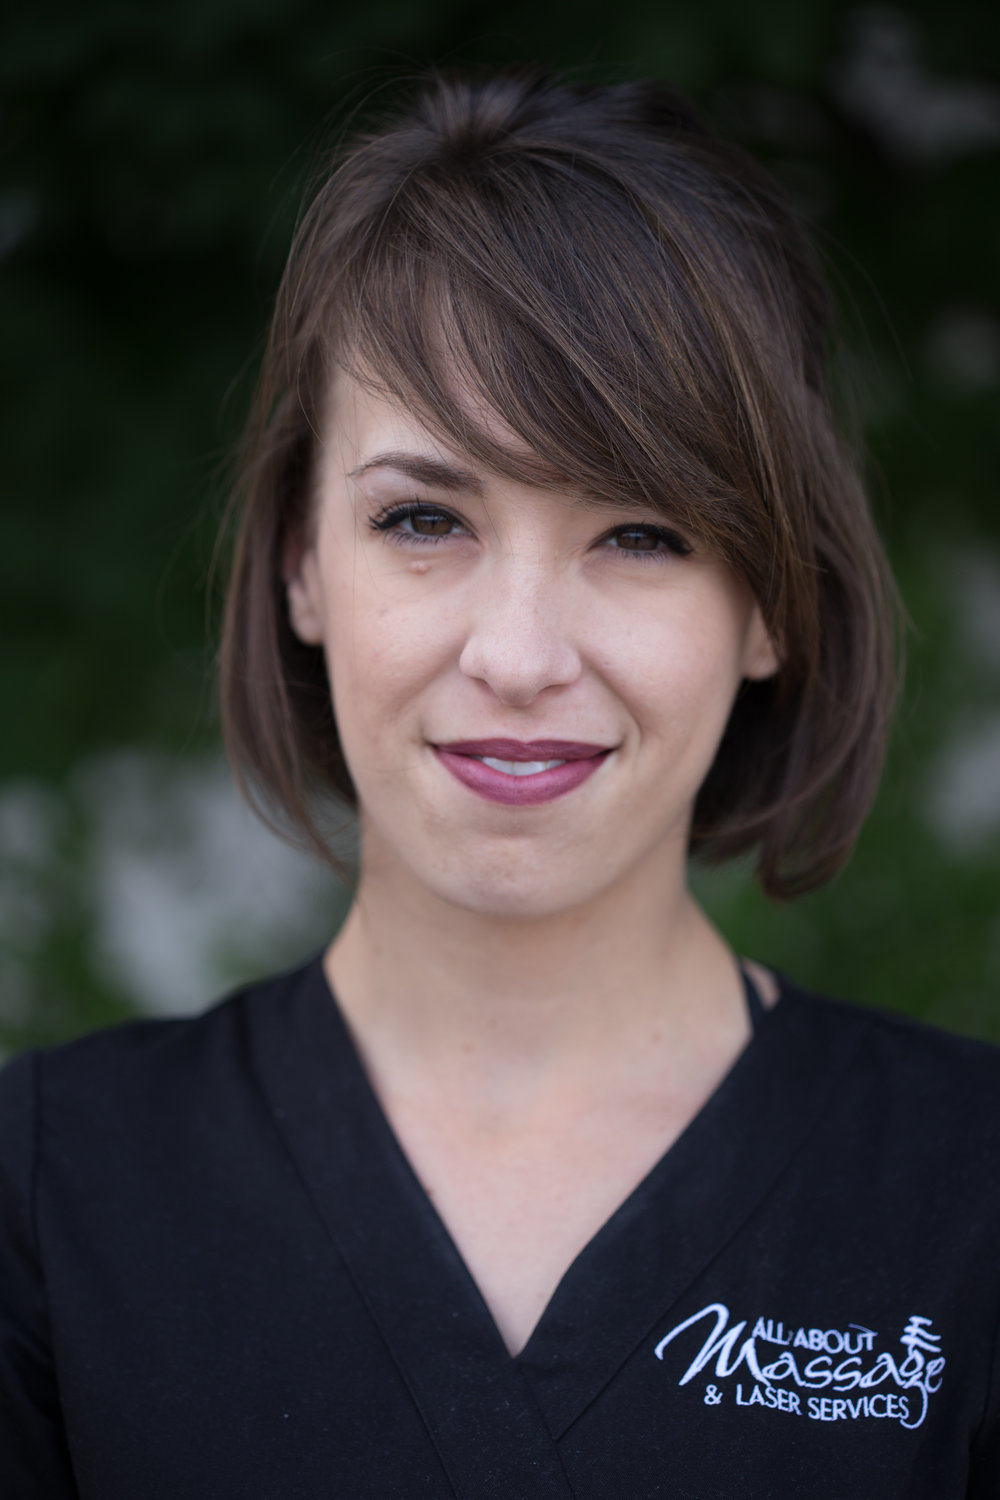 Angelina Labre - Angelina Labre received her certification from the college of hairstyling and aesthetics in Sudbury, in 2010. She has been with the all about massage team since the winter of 2014. Angelina has also been certified in sugaring (hair removal) and aromatherapy. She enjoys spending time with her clients in a relaxing atmosphere, helping them to feel their best whether it is with their foot care, a variety of facial treatments or her personal favourite, the essential touch. This service uses a variety of specially chosen essential oils to help restore balance and boost the immune system. Angelina also performs full body exfoliations, as well as manicures, threading and waxing.Angelina enjoys spending time with young daughter as well as her new passion, sewing!